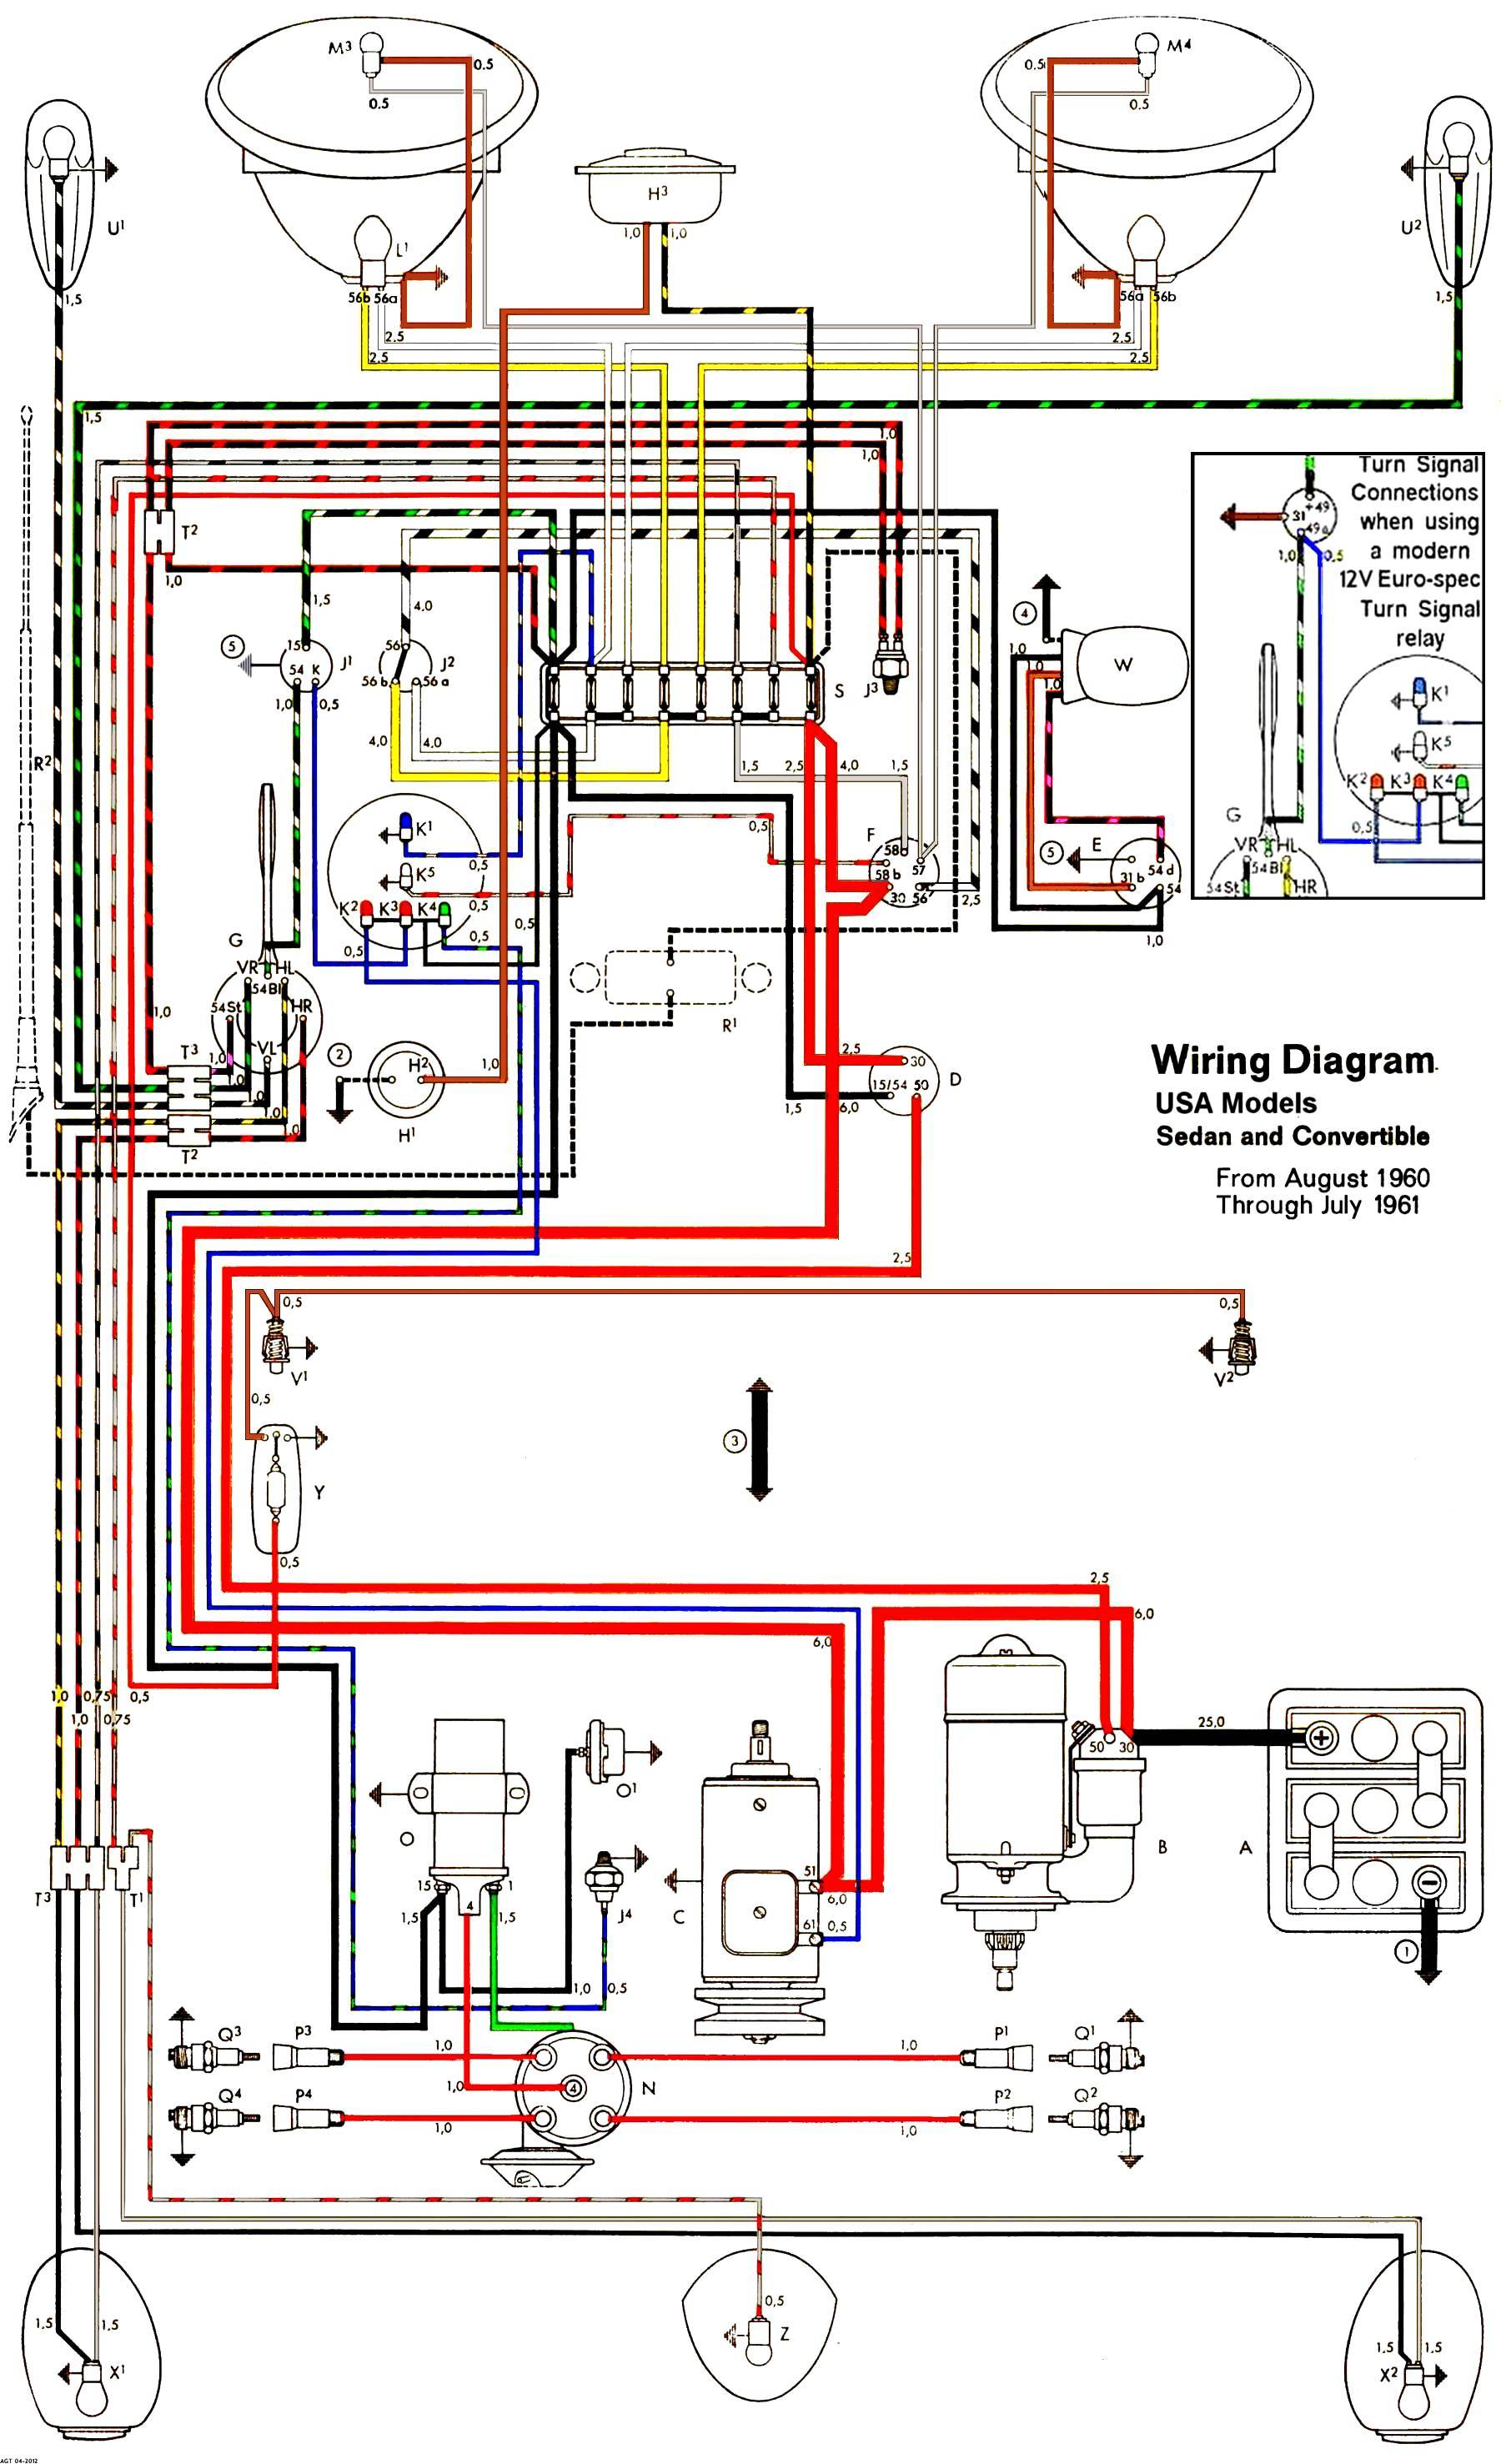 1998 Vw Beetle Wiring Diagram Reinvent Your Under Dash Fuse Box 2002 Car Detailed Schematics Rh Keyplusrubber Com 98 Engine